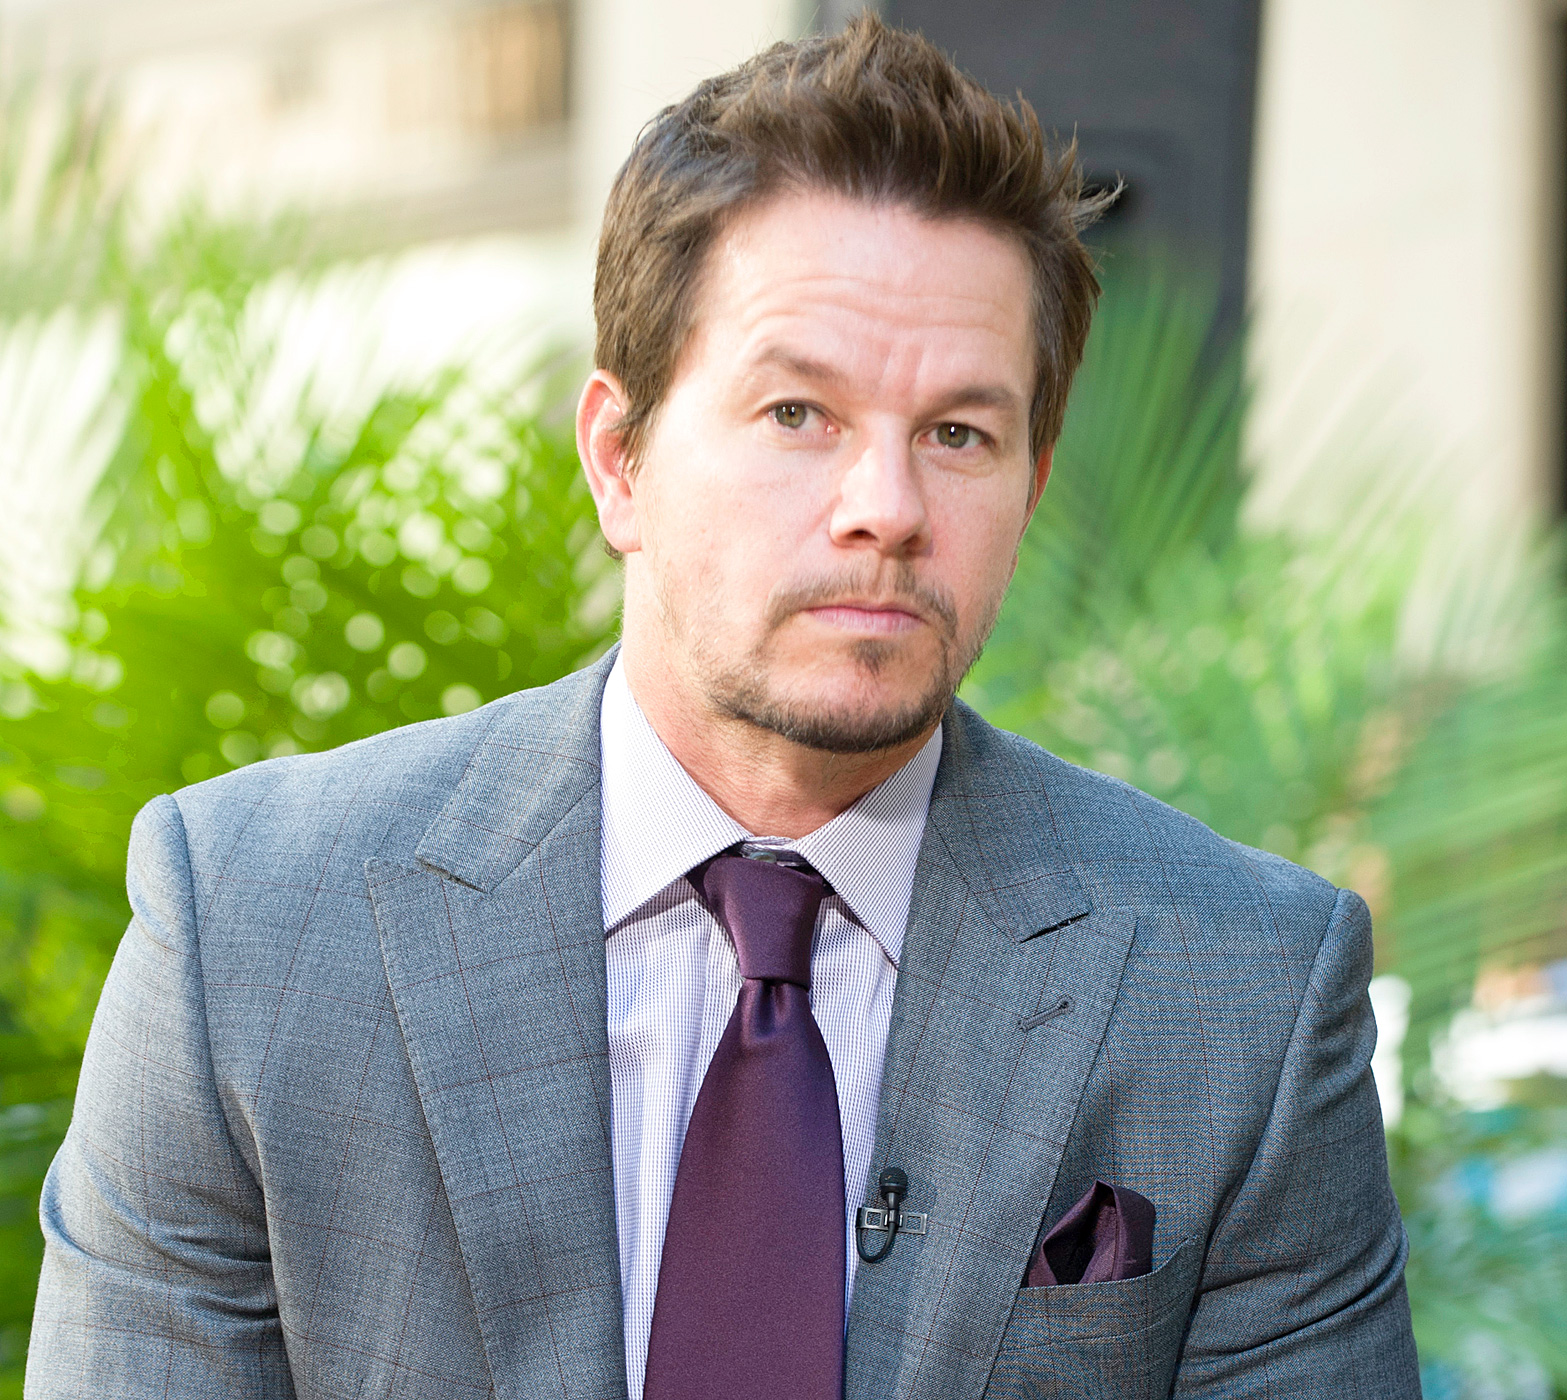 Wow, Looks Like Mark Wahlberg is a Pretty Slippery Snake